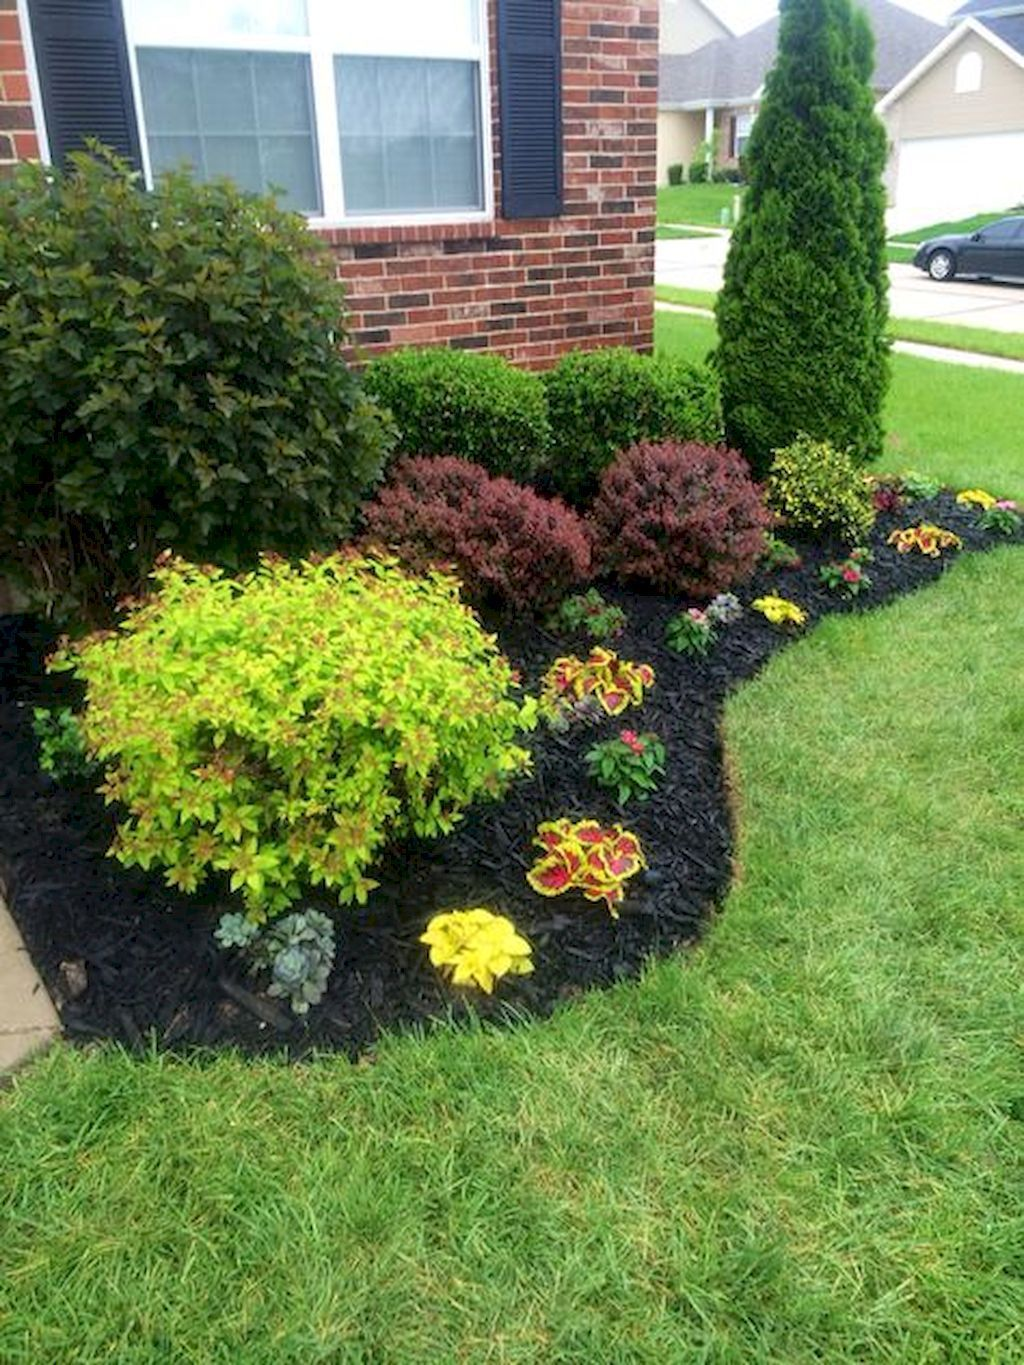 25 Beautiful Front Yard Landscaping Ideas on A Budget | Pinterest ...